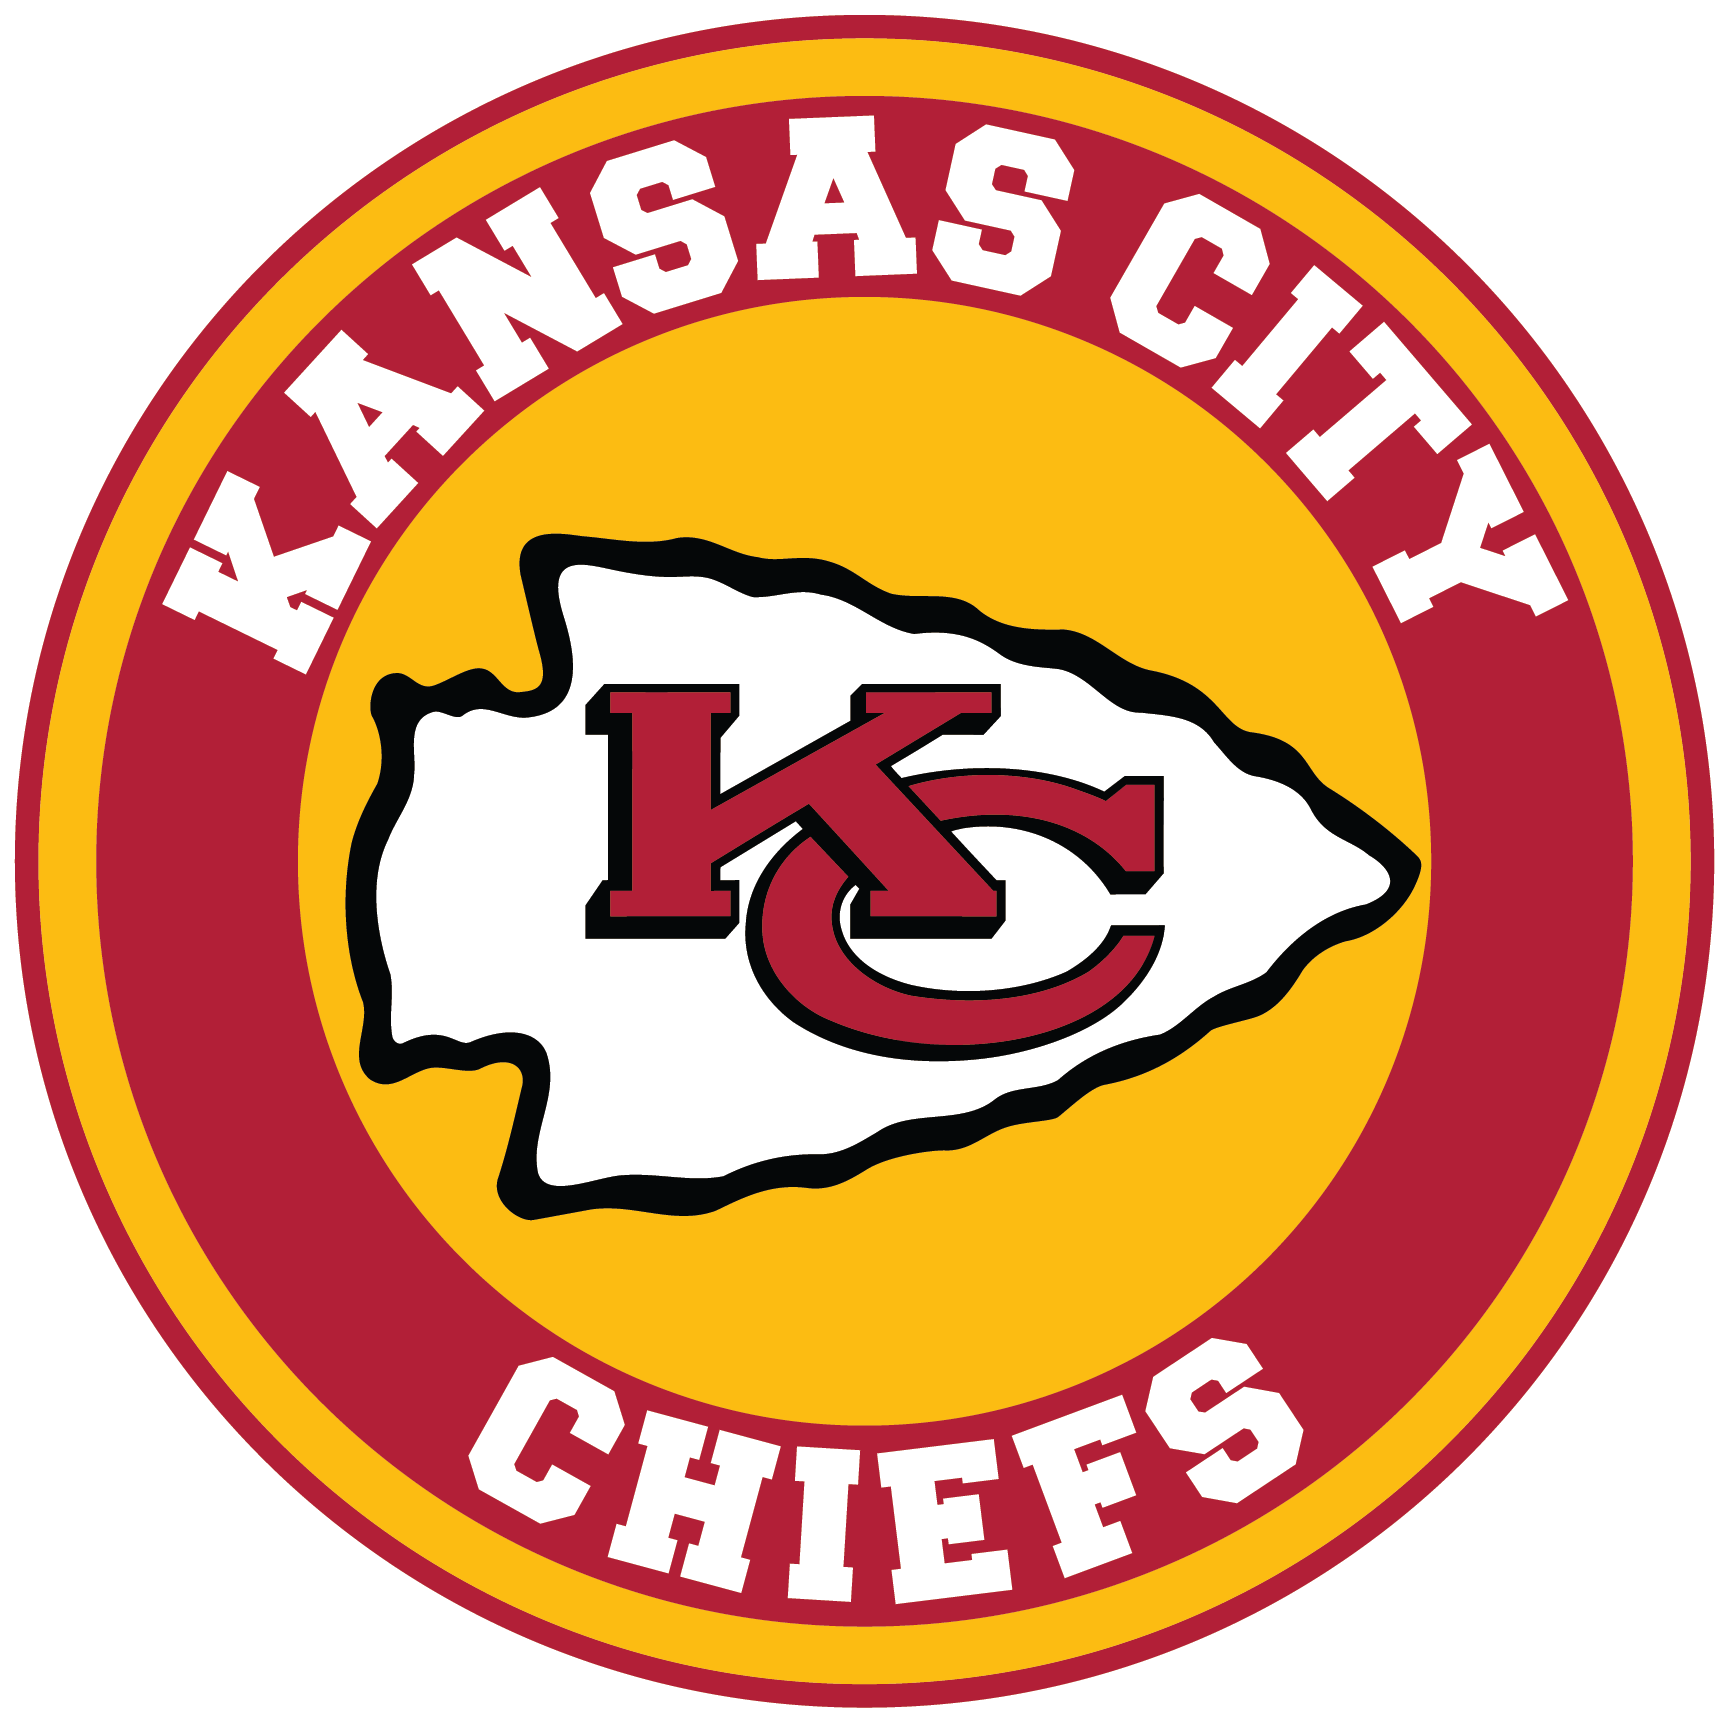 Kansas City Chiefs Circle Logo Vinyl Decal Sticker 5 Sizes Sportz For Less